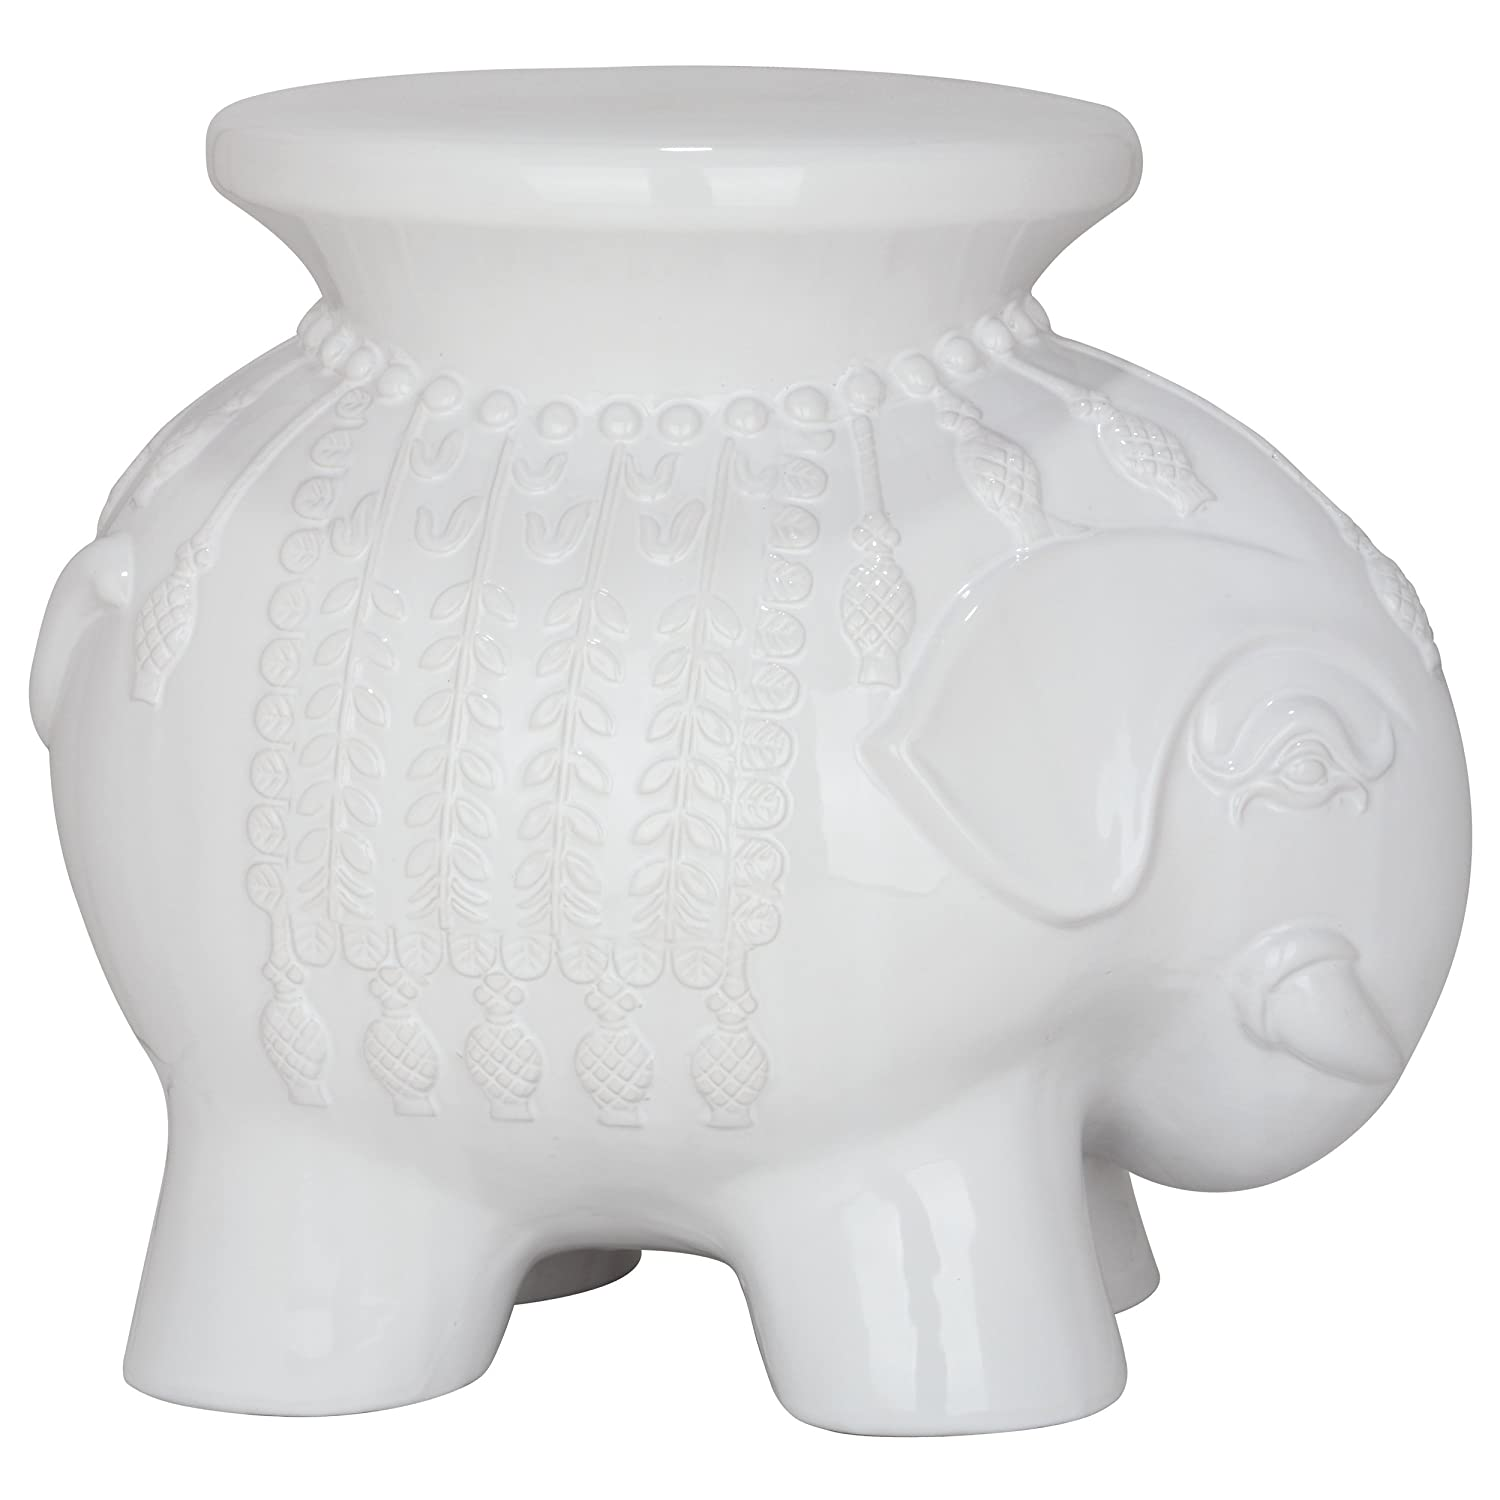 Amazon.com: Safavieh Castle Gardens Collection Elephant Ceramic Garden Stool,  White: Kitchen U0026 Dining